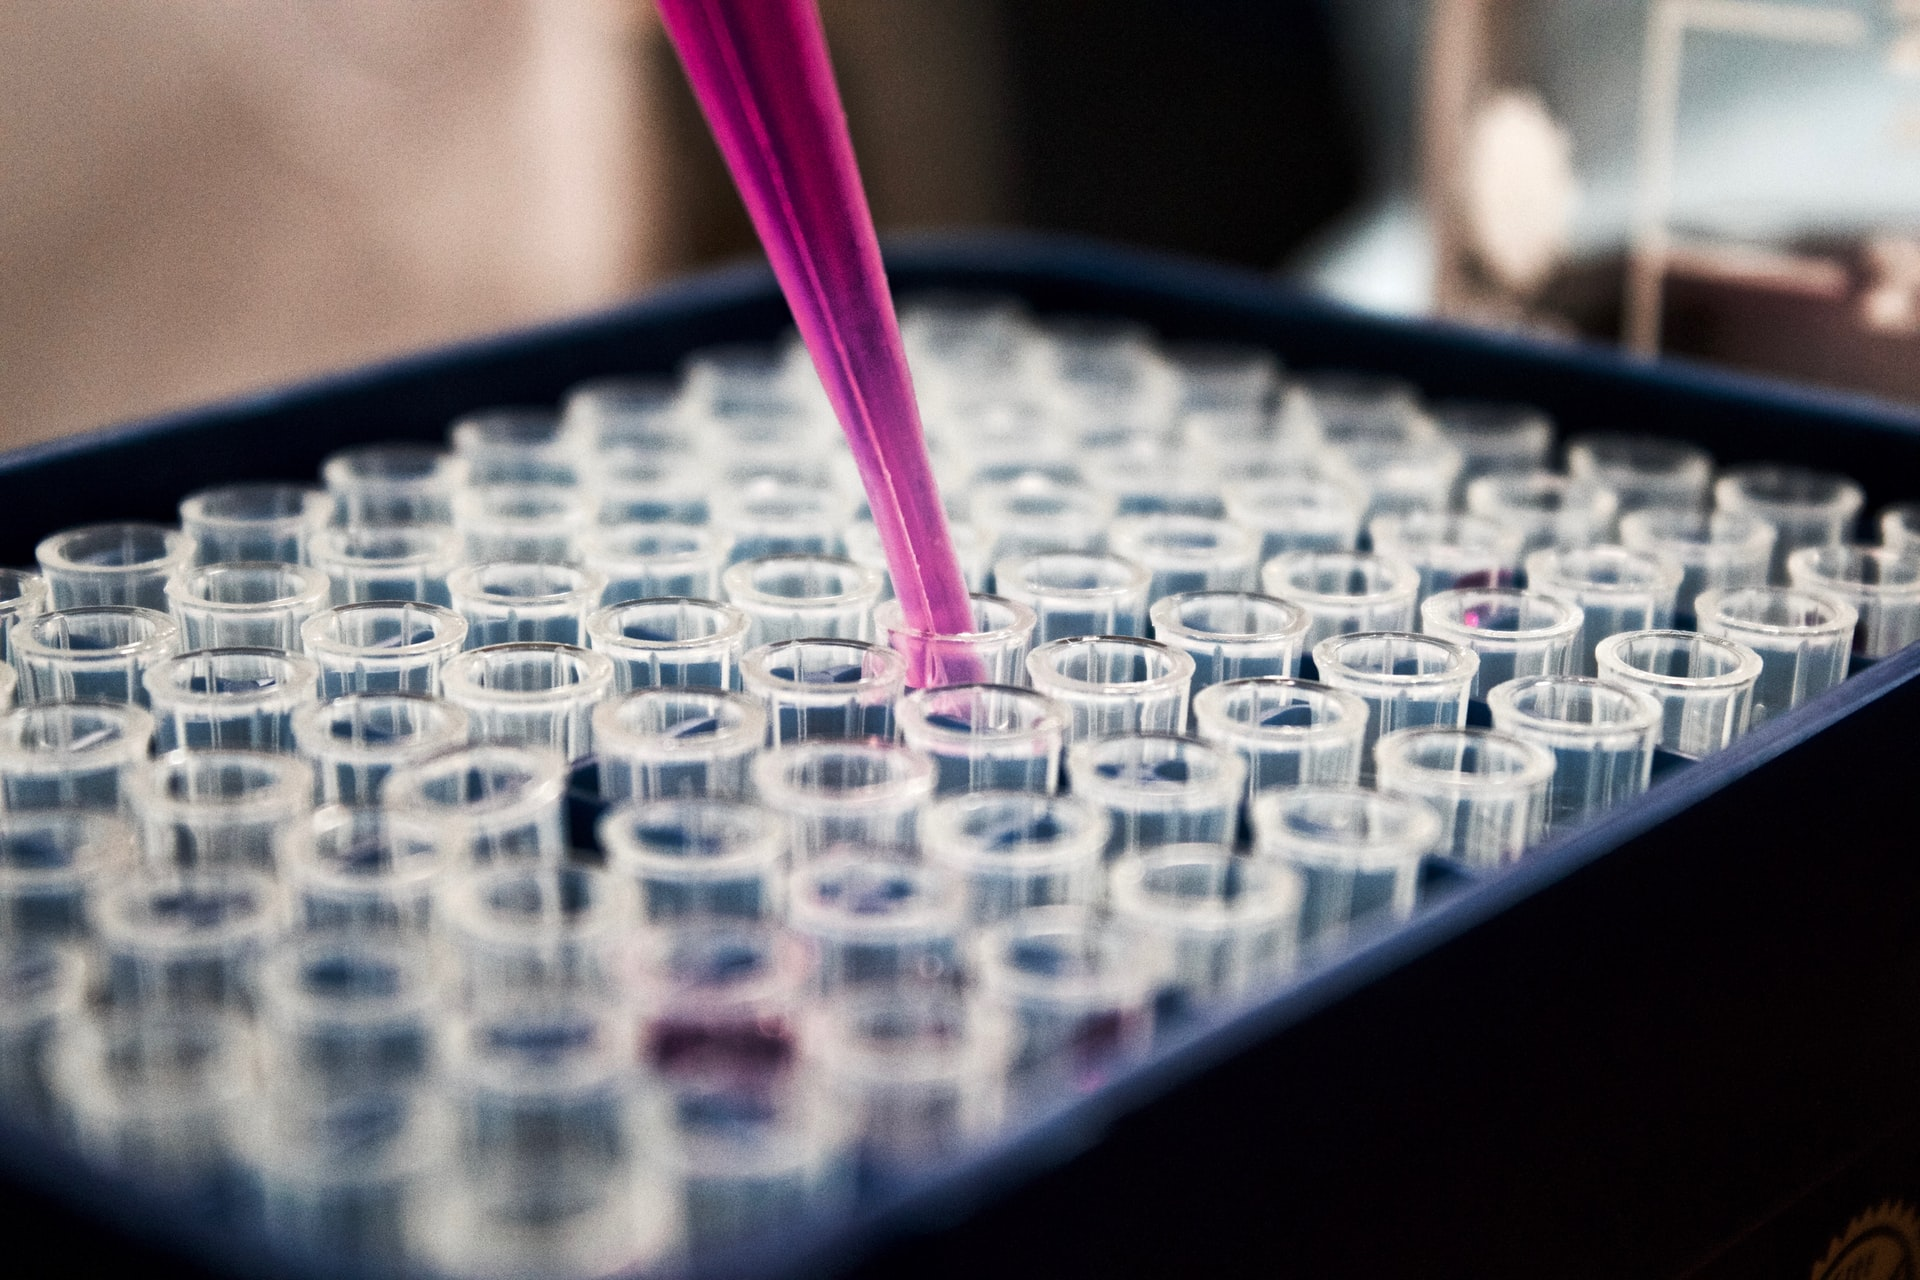 This image is taken at a lab with small amounts of solution being dropped into test tubes.